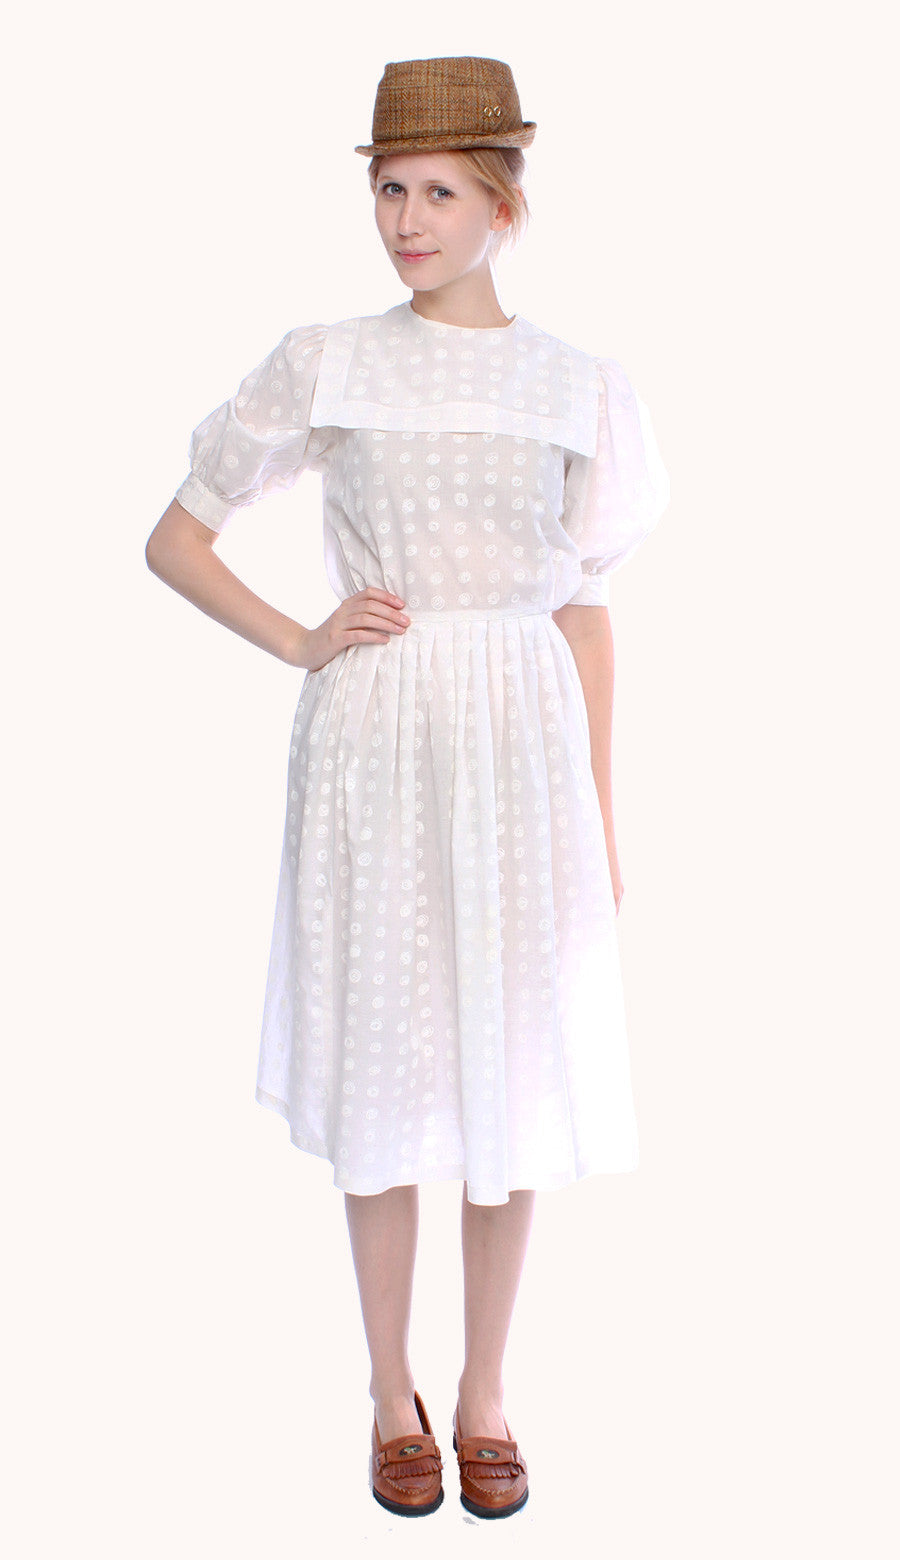 WHITE SAILOR DRESS